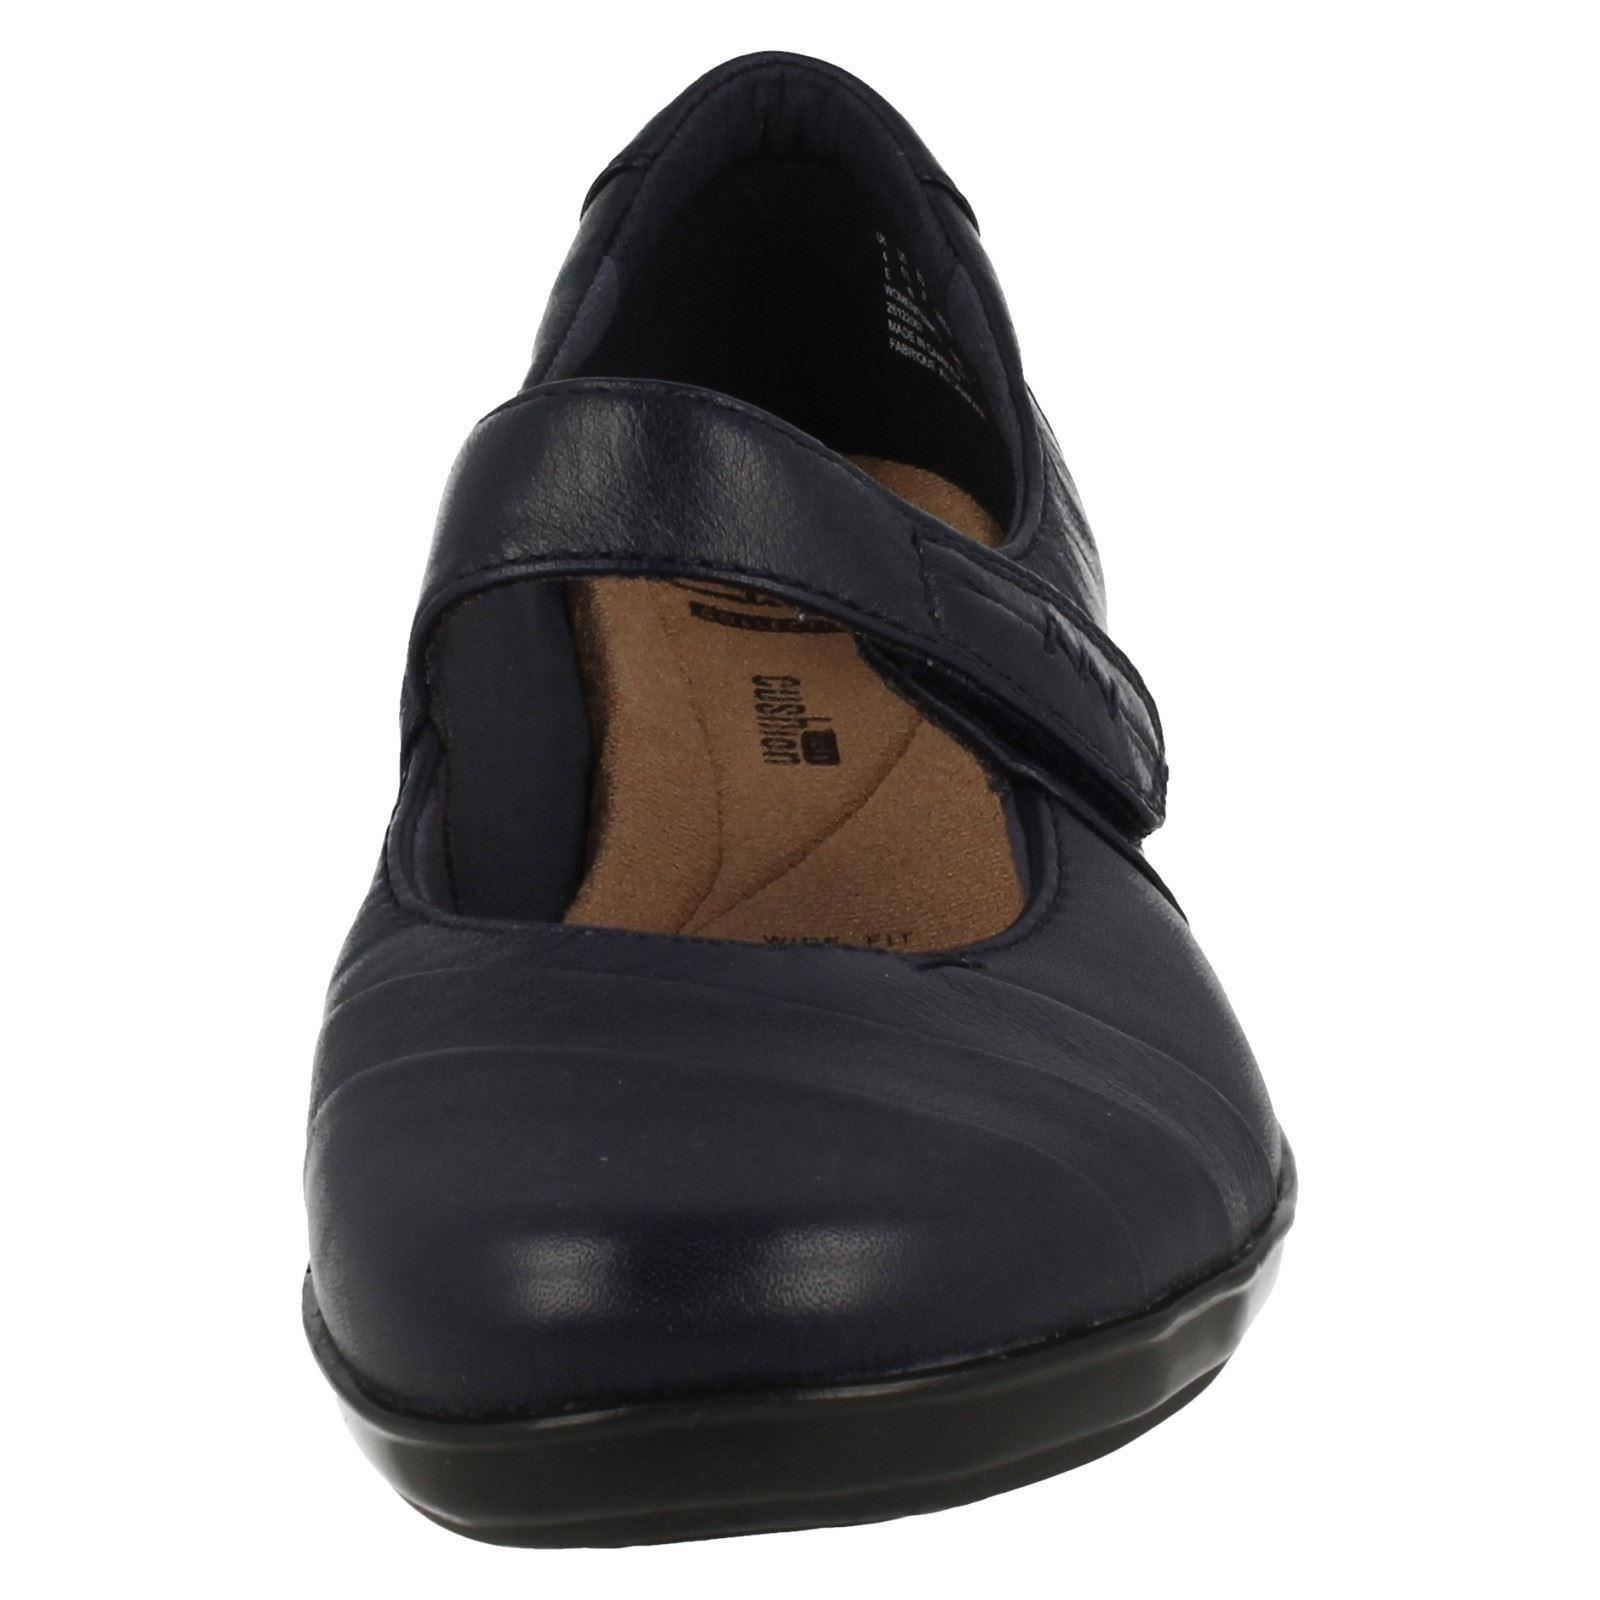 mesdames everlay clarks everlay mesdames kennon amortir les chaussures chics d5e737